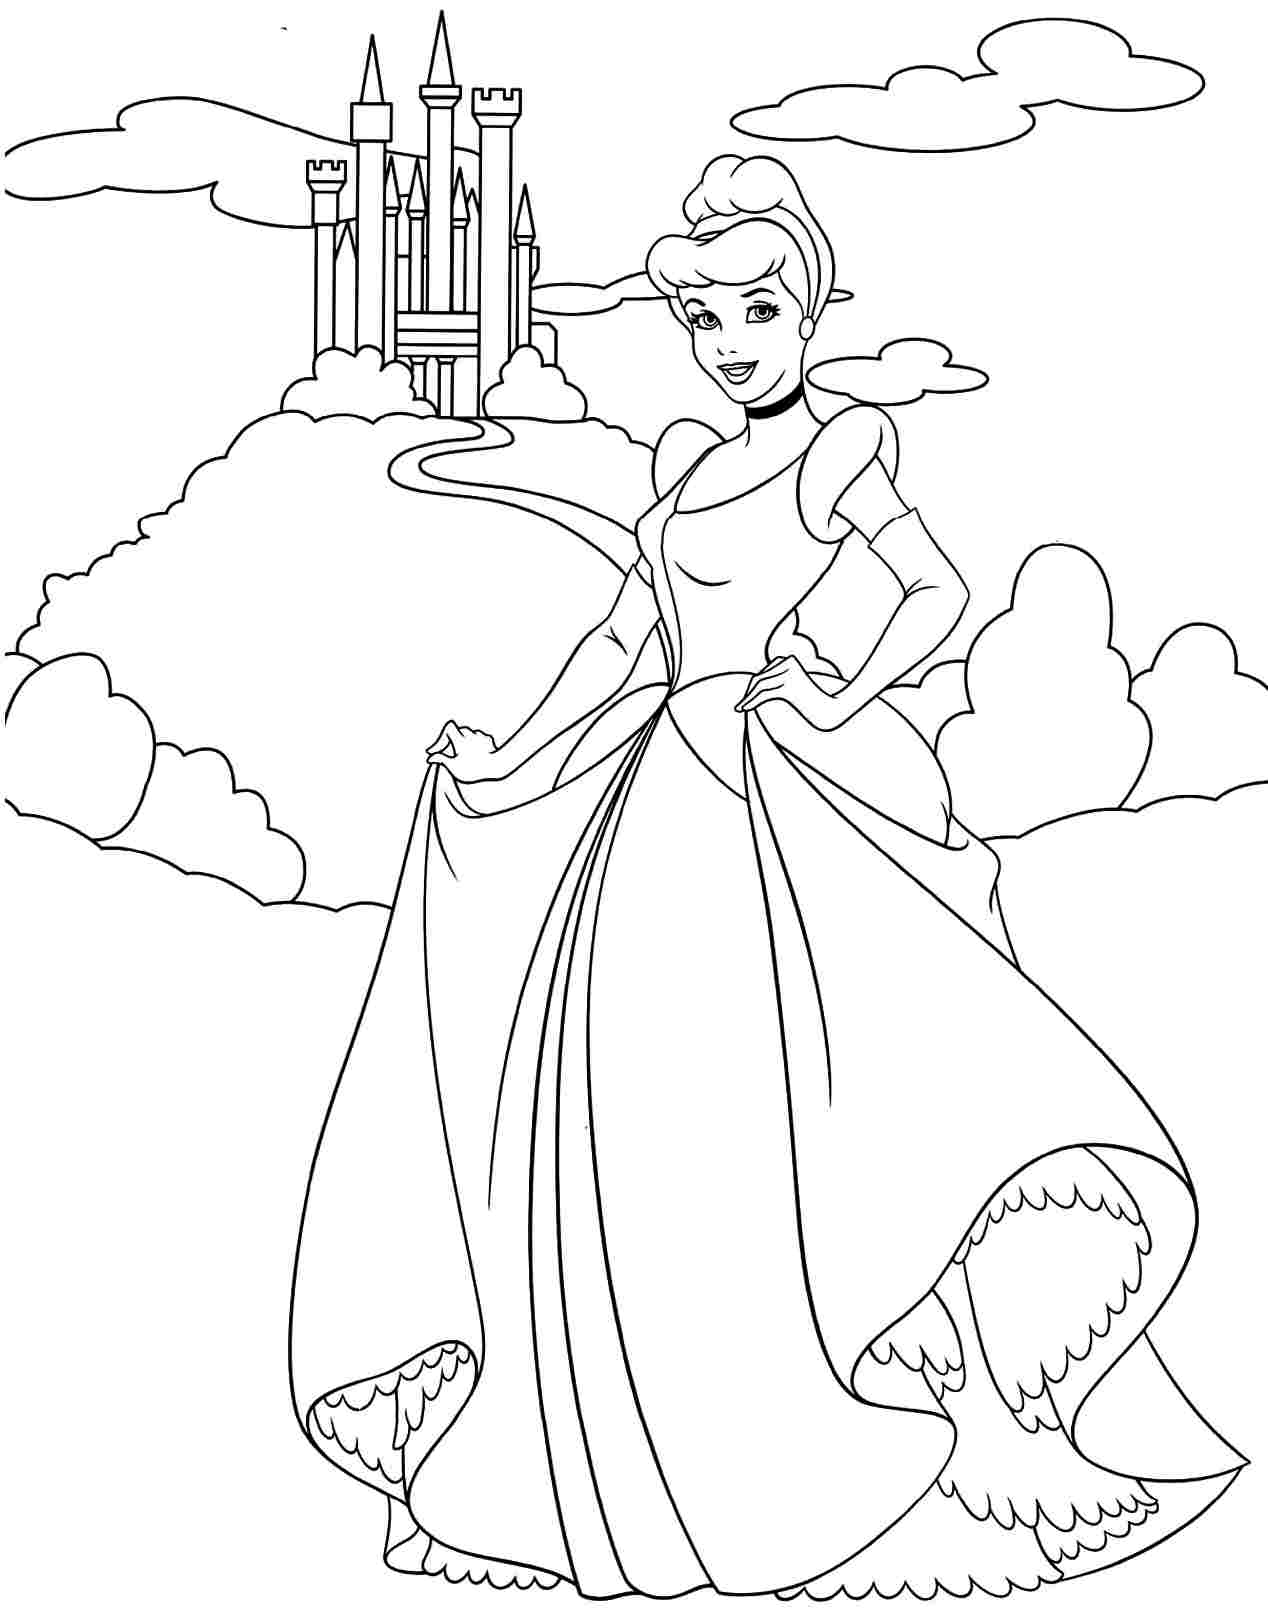 Cinderella cartoon coloring pages ~ Cinderella Slipper Drawing at GetDrawings.com | Free for ...